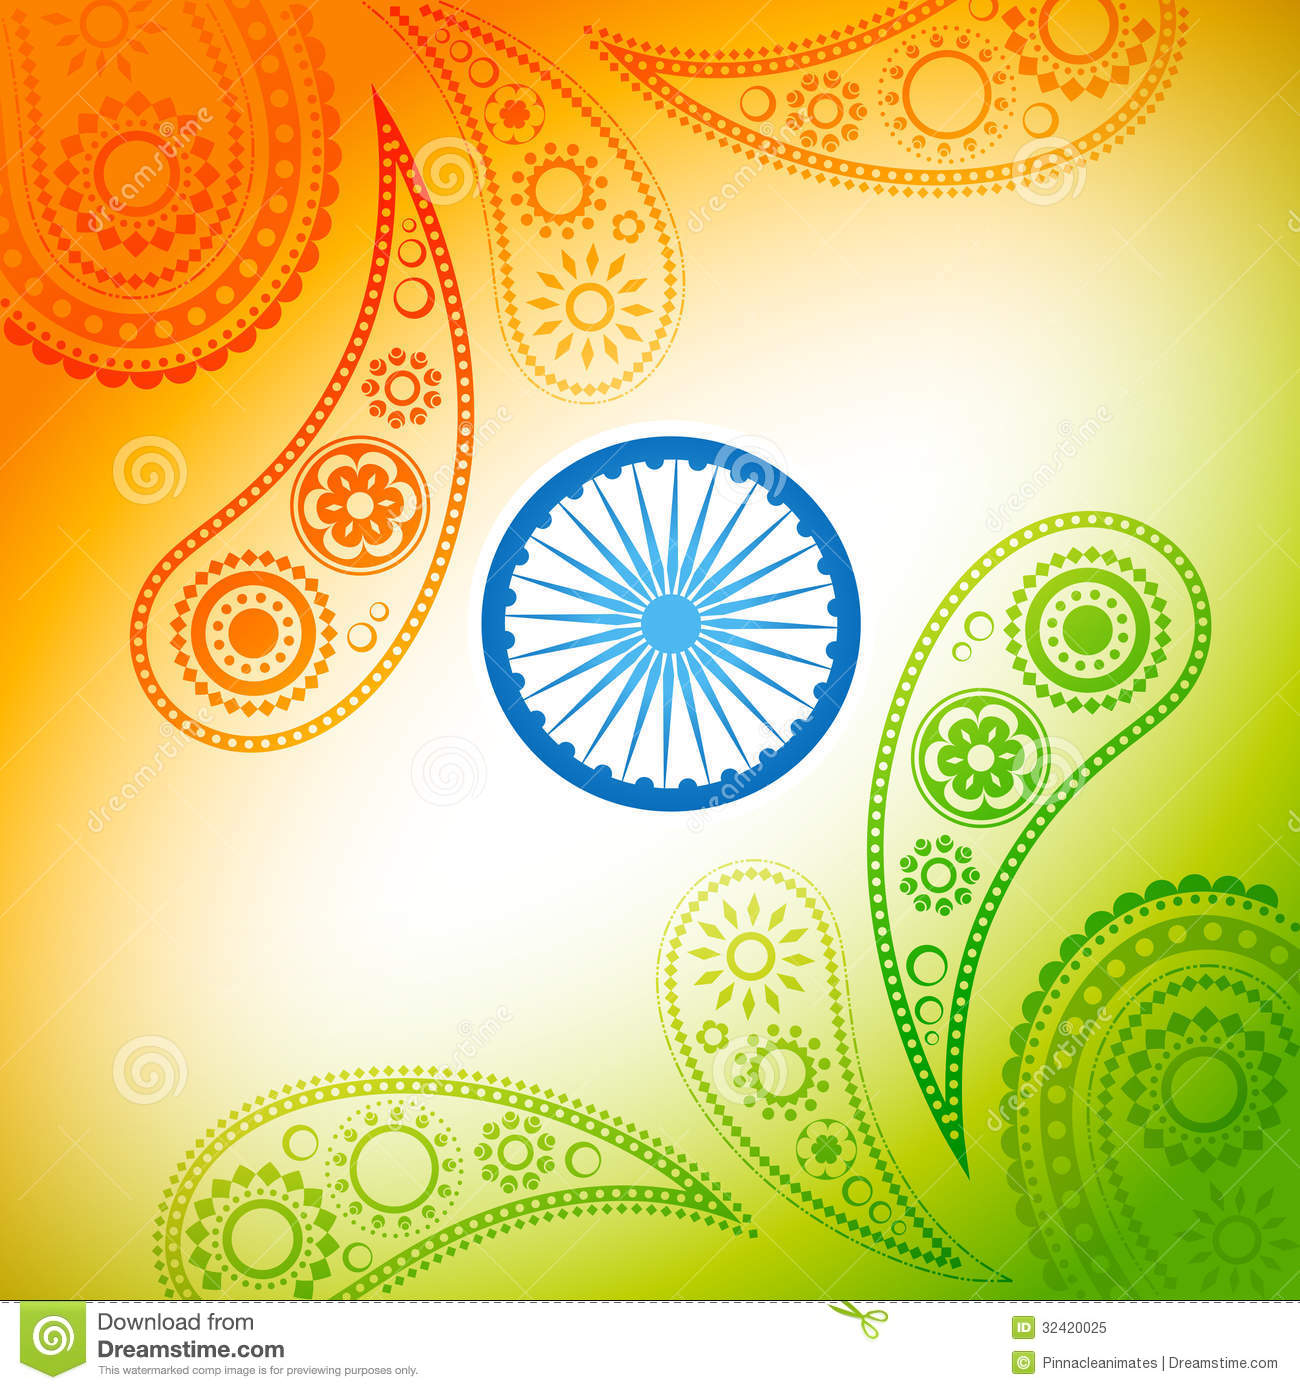 Abstract India Background Royalty Free Stock Image - Image: 36501586